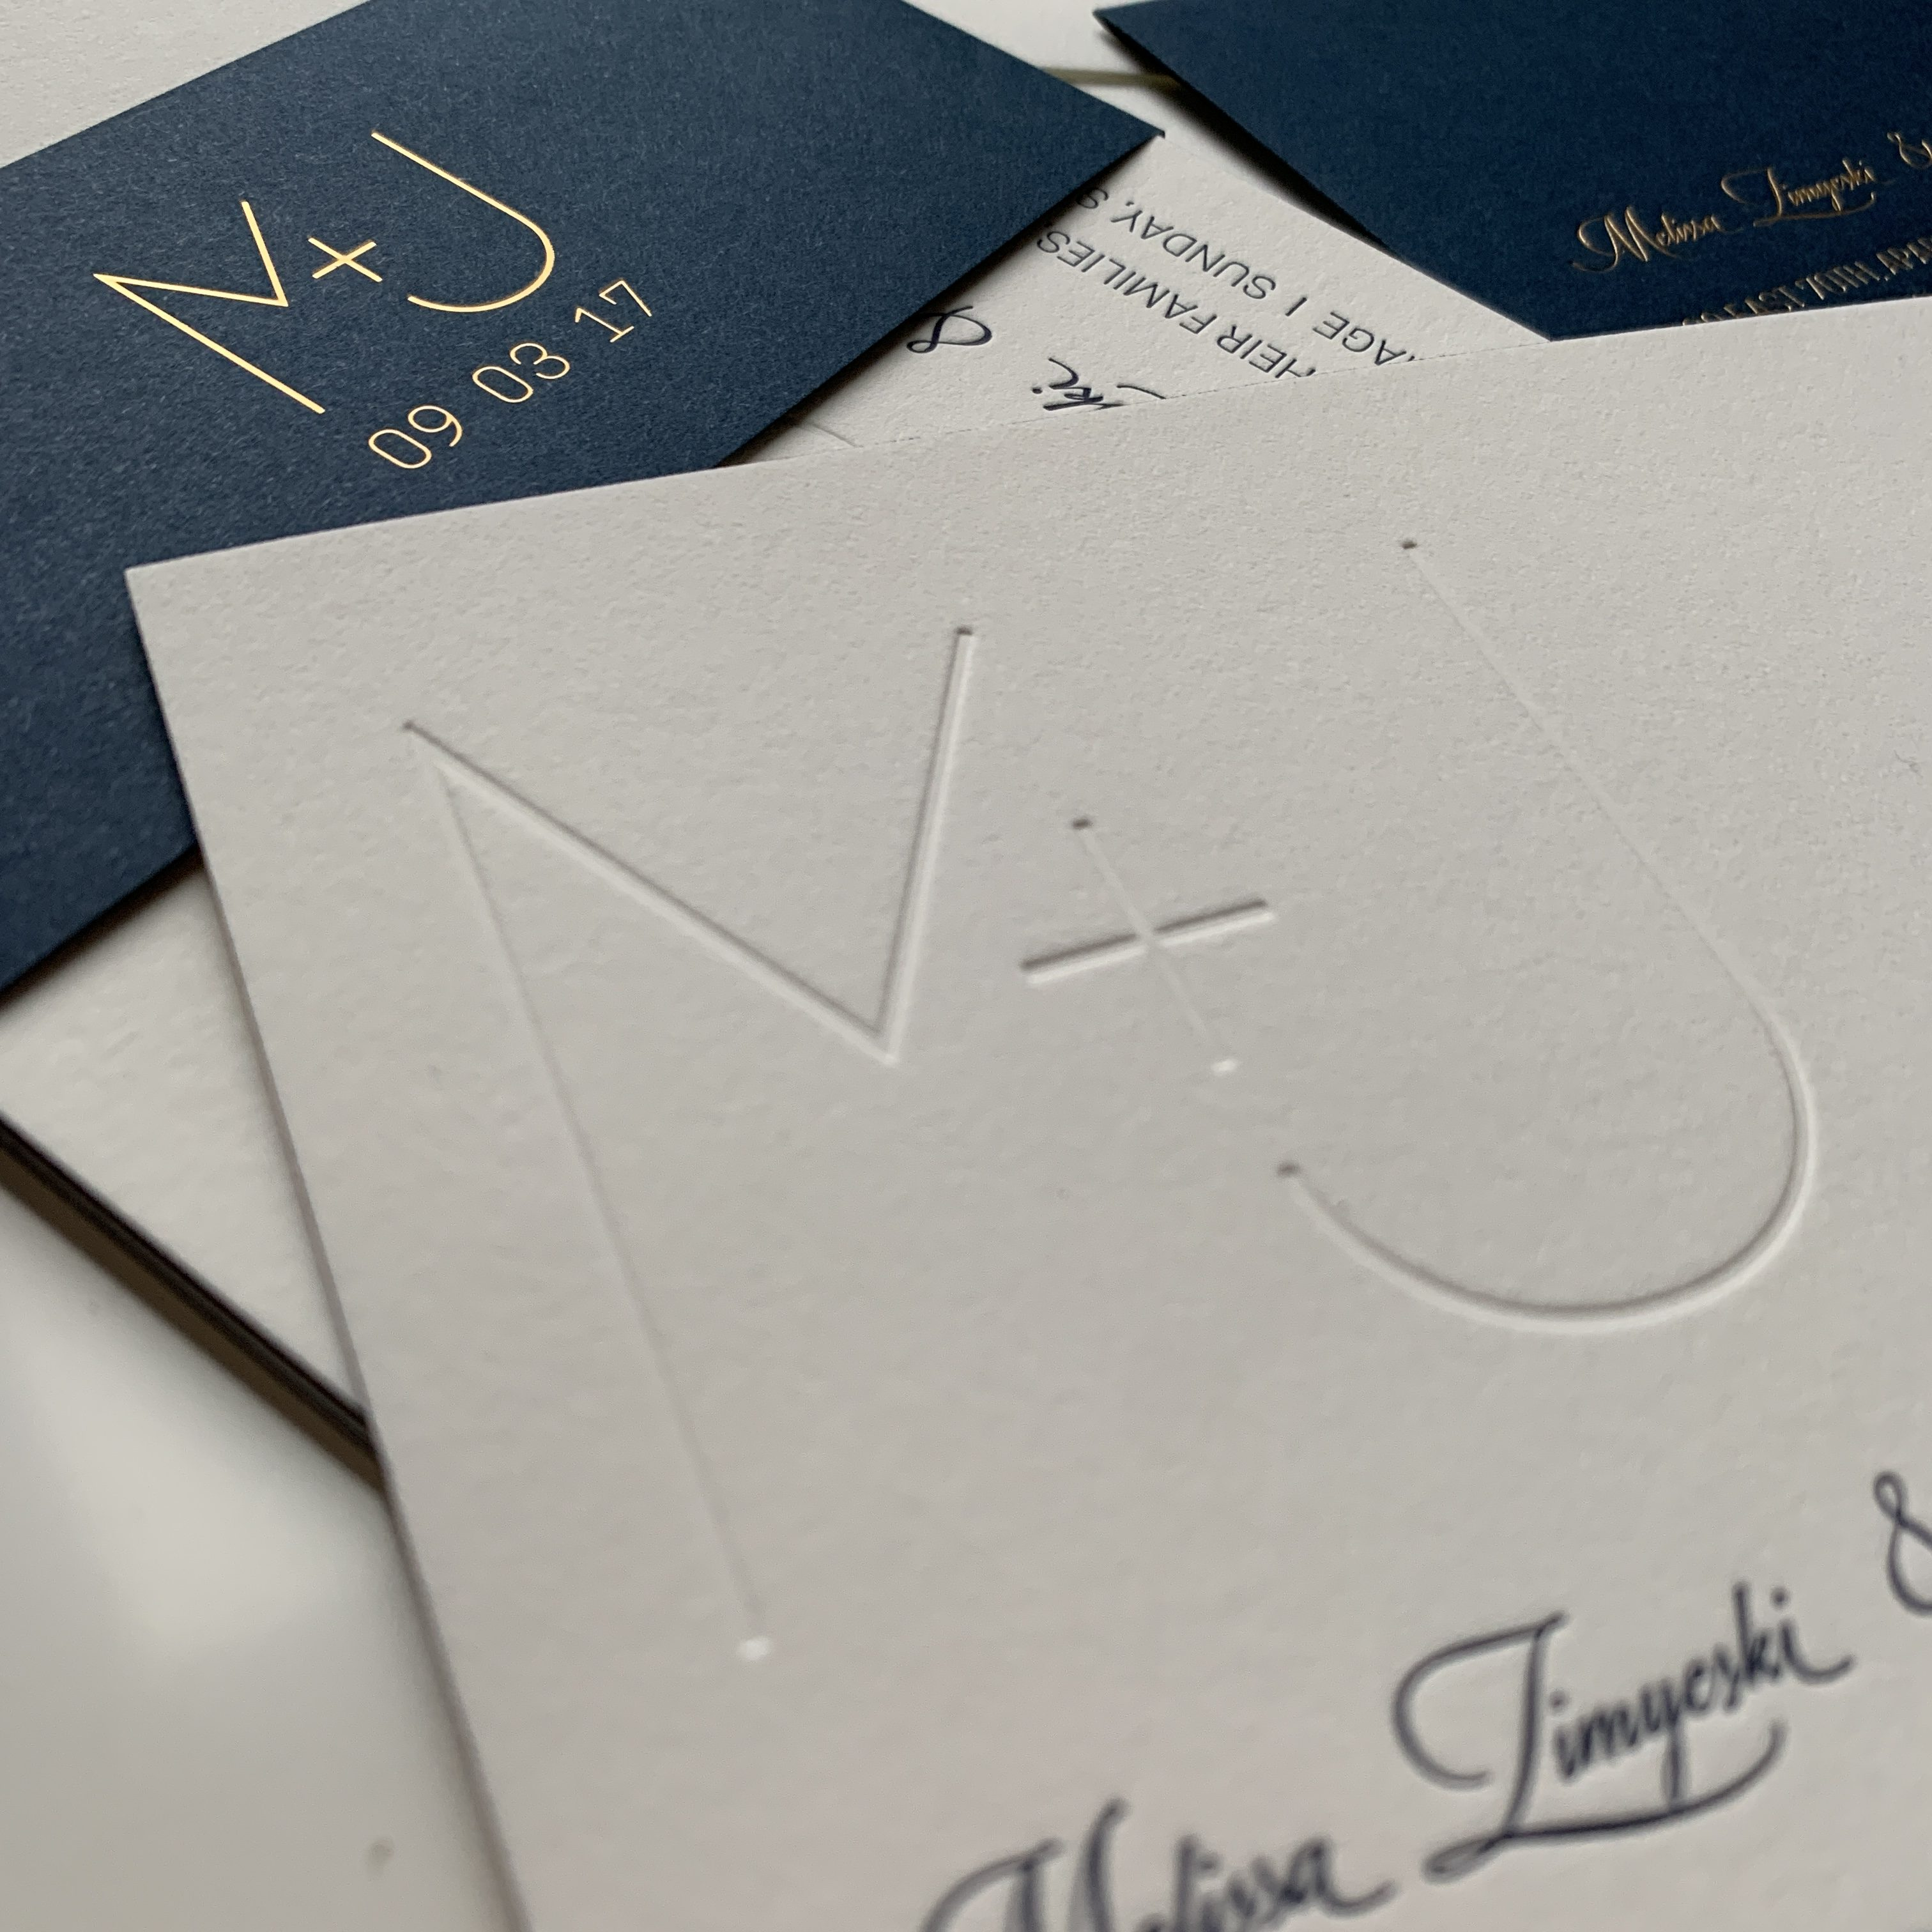 Close up detail of M+J branding and invites. Blind emboss printing on white and gold foil letterpress printing on navy are shown.